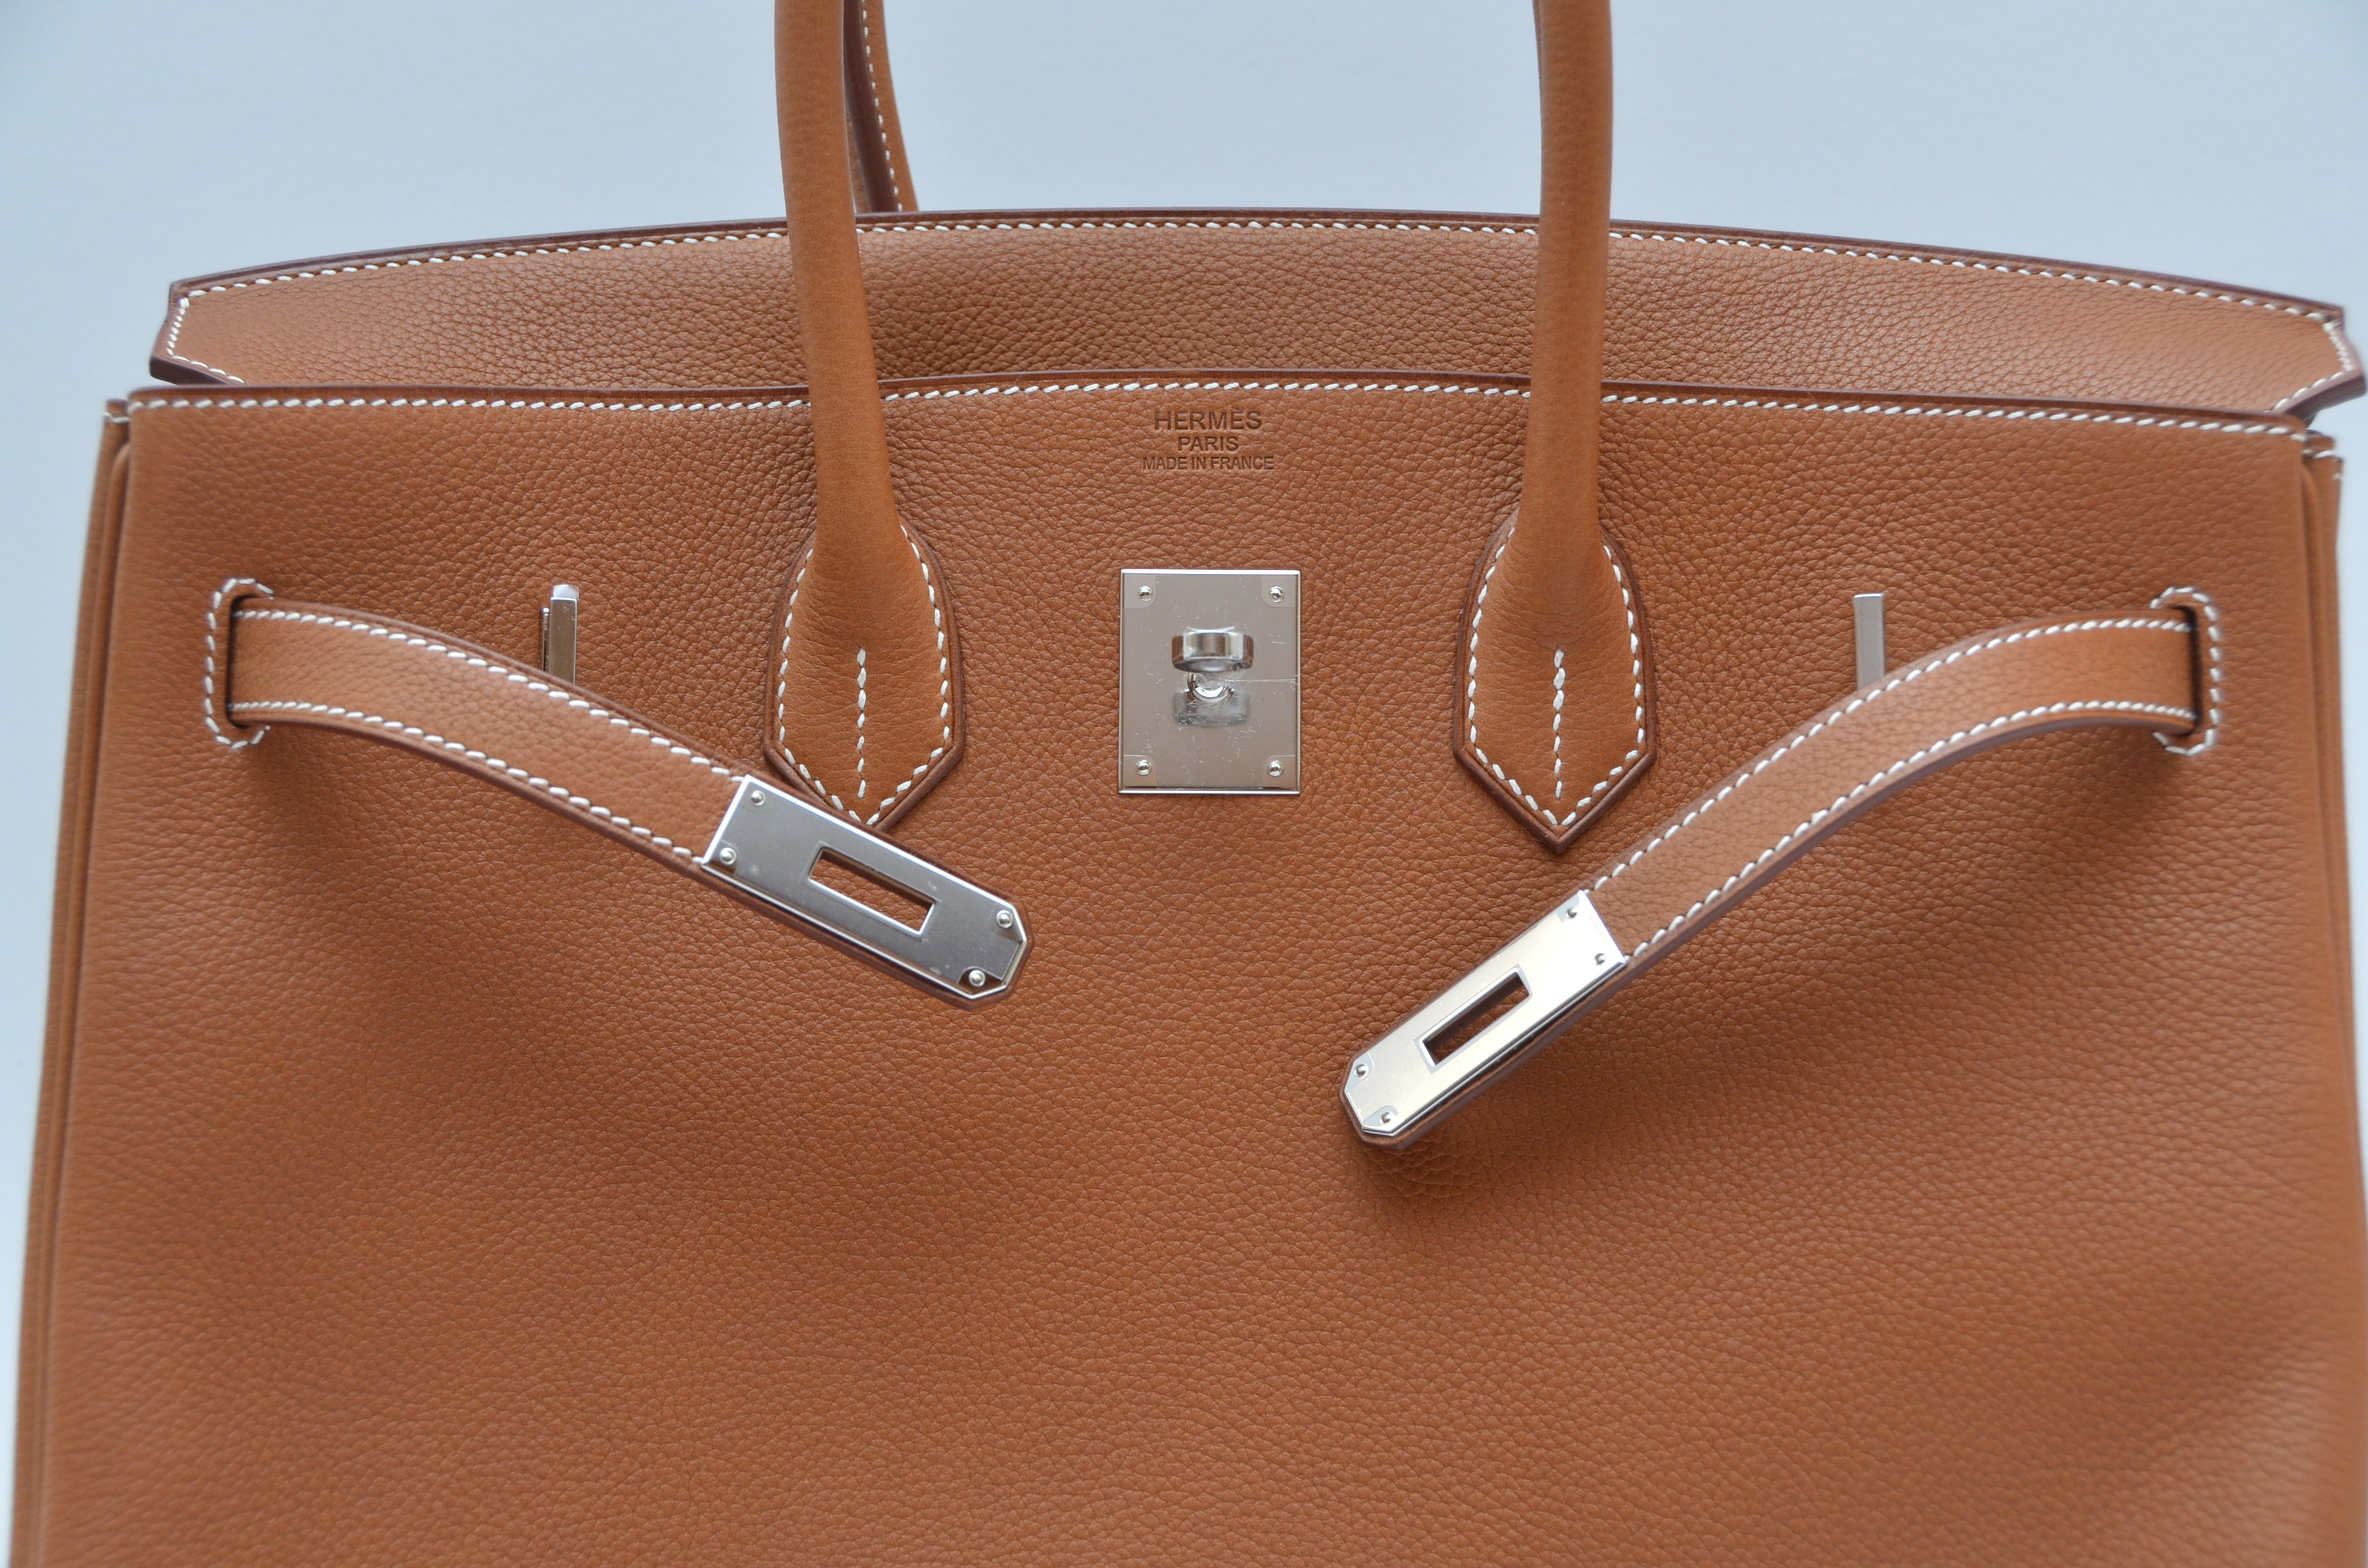 9103603f023 Hermes Birkin 35 CM Bag Very Rare Veau Barenia Faubourg Palladium Hardware  NEW For Sale at 1stdibs